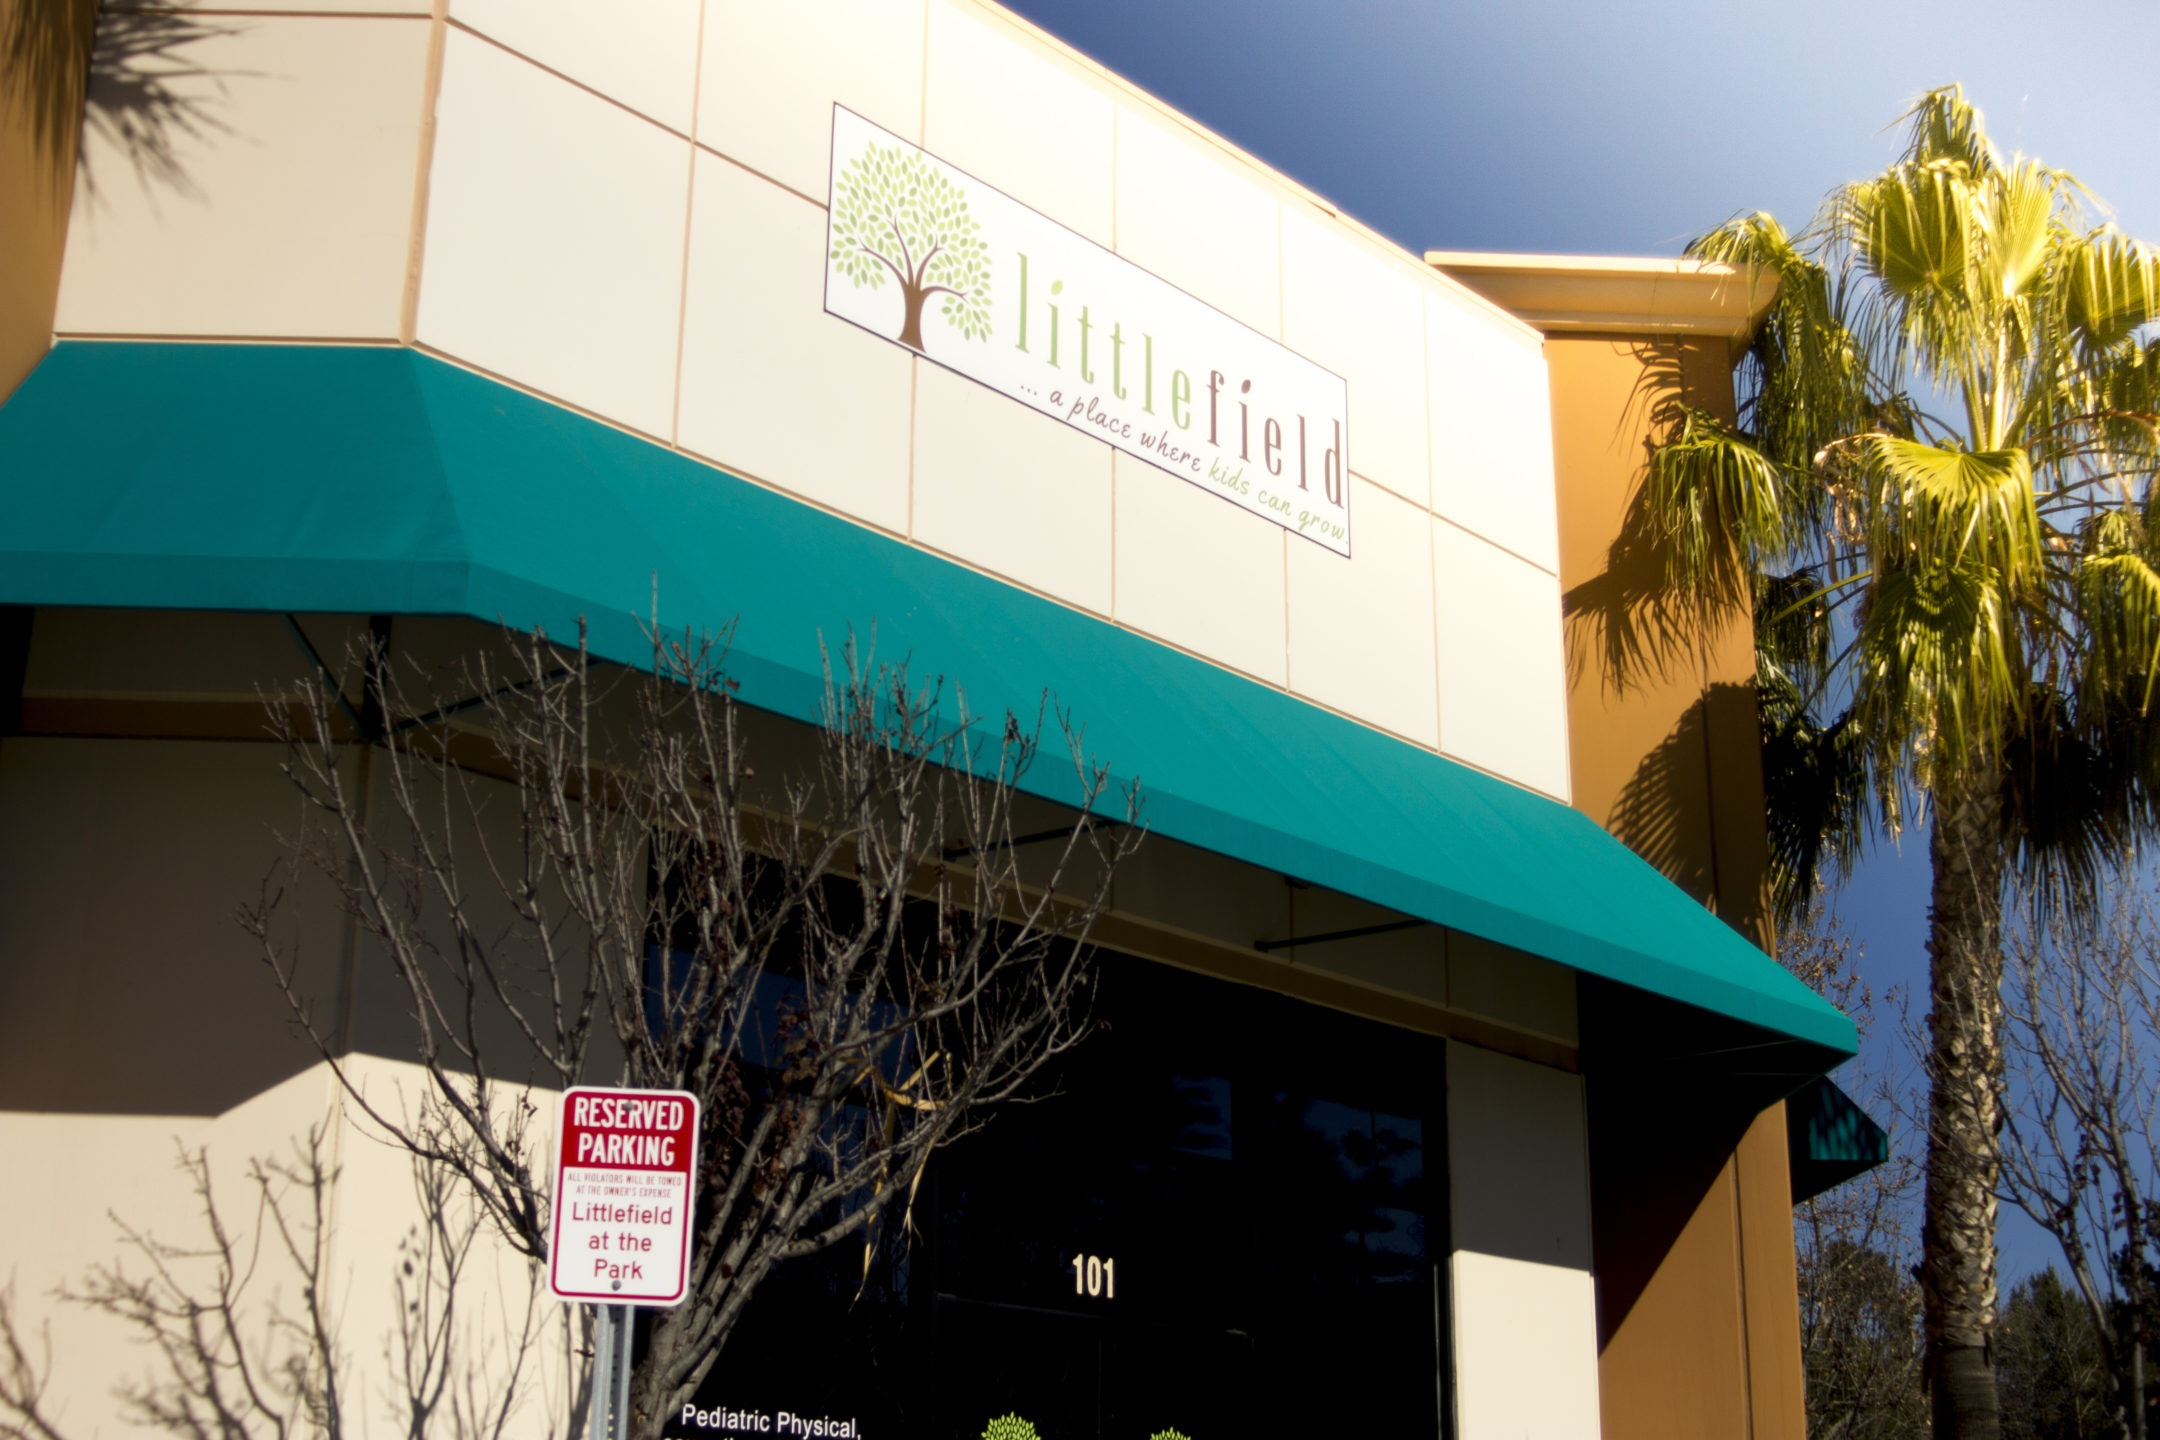 Littlefield Physical Therapy Inc.